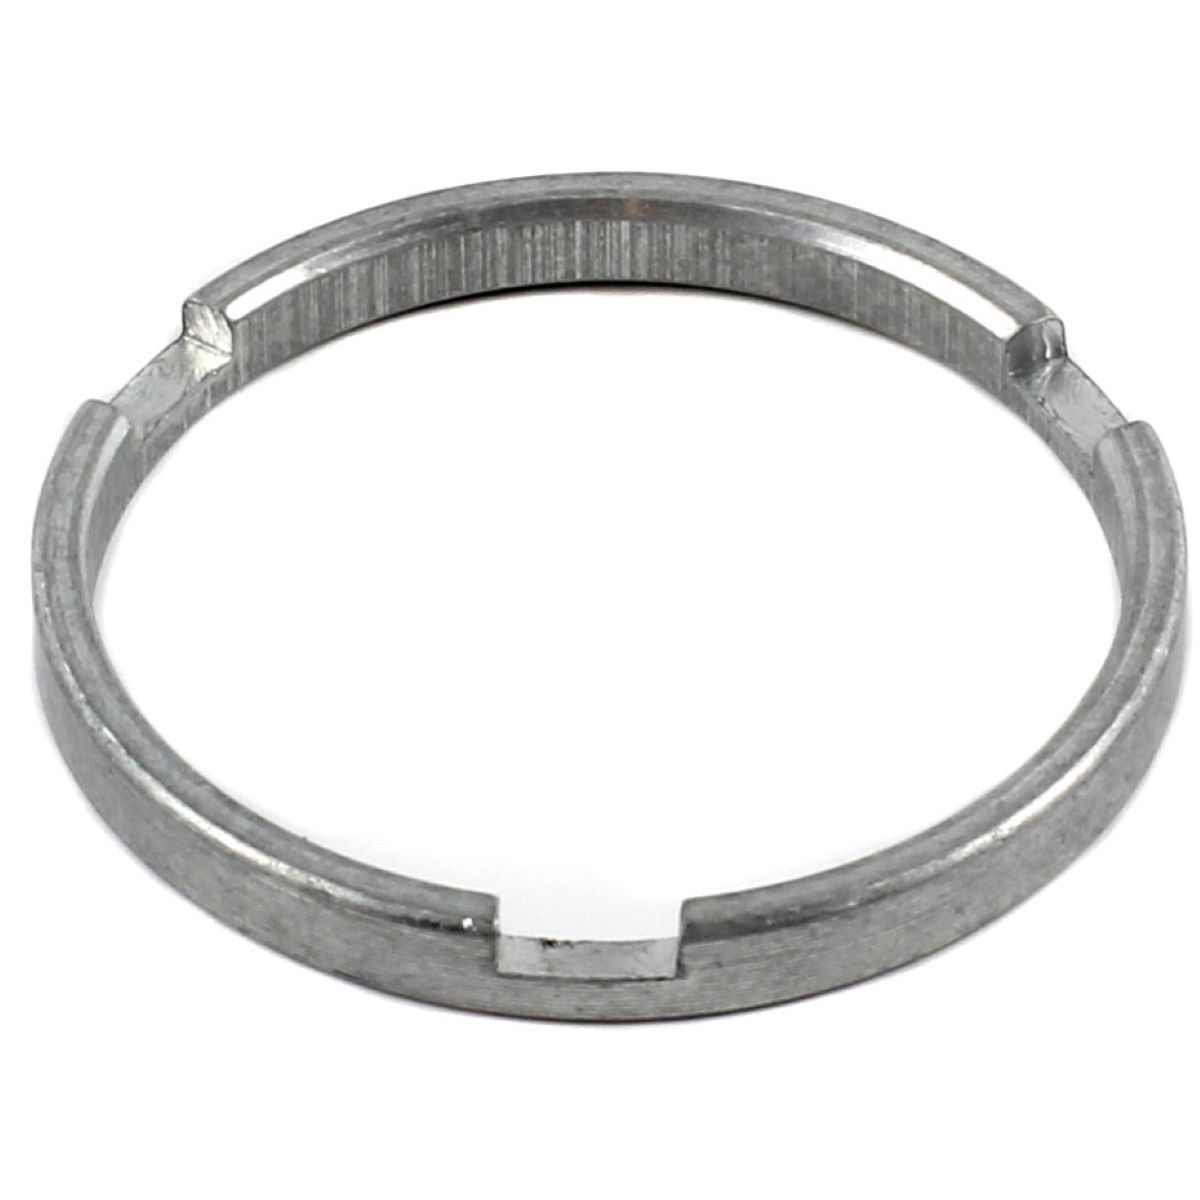 Hope 7sp Spacer - One Size Neutral  Cassette Spares